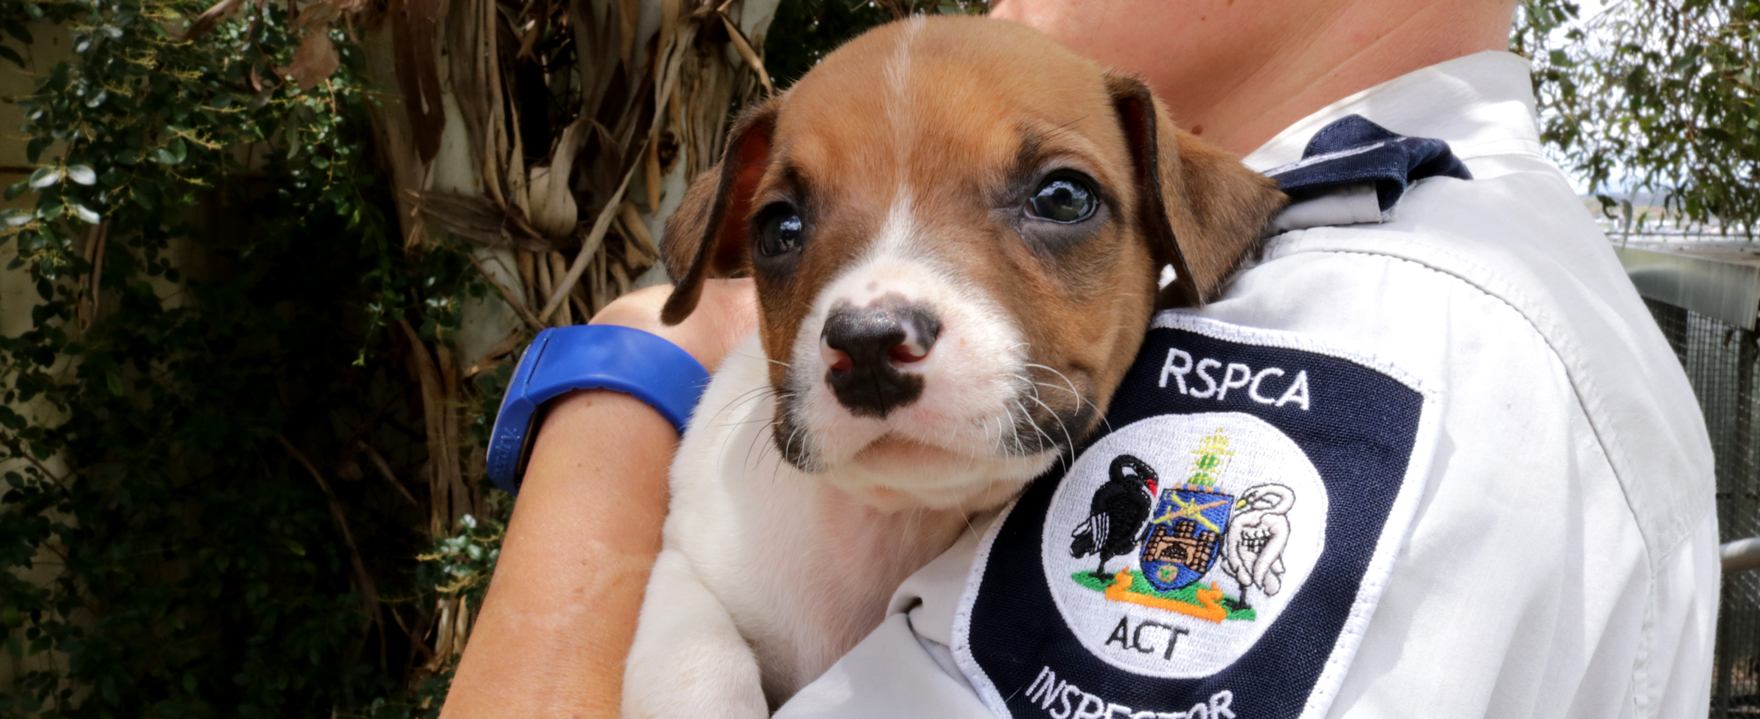 RSPCA ACT Inspector and puppy